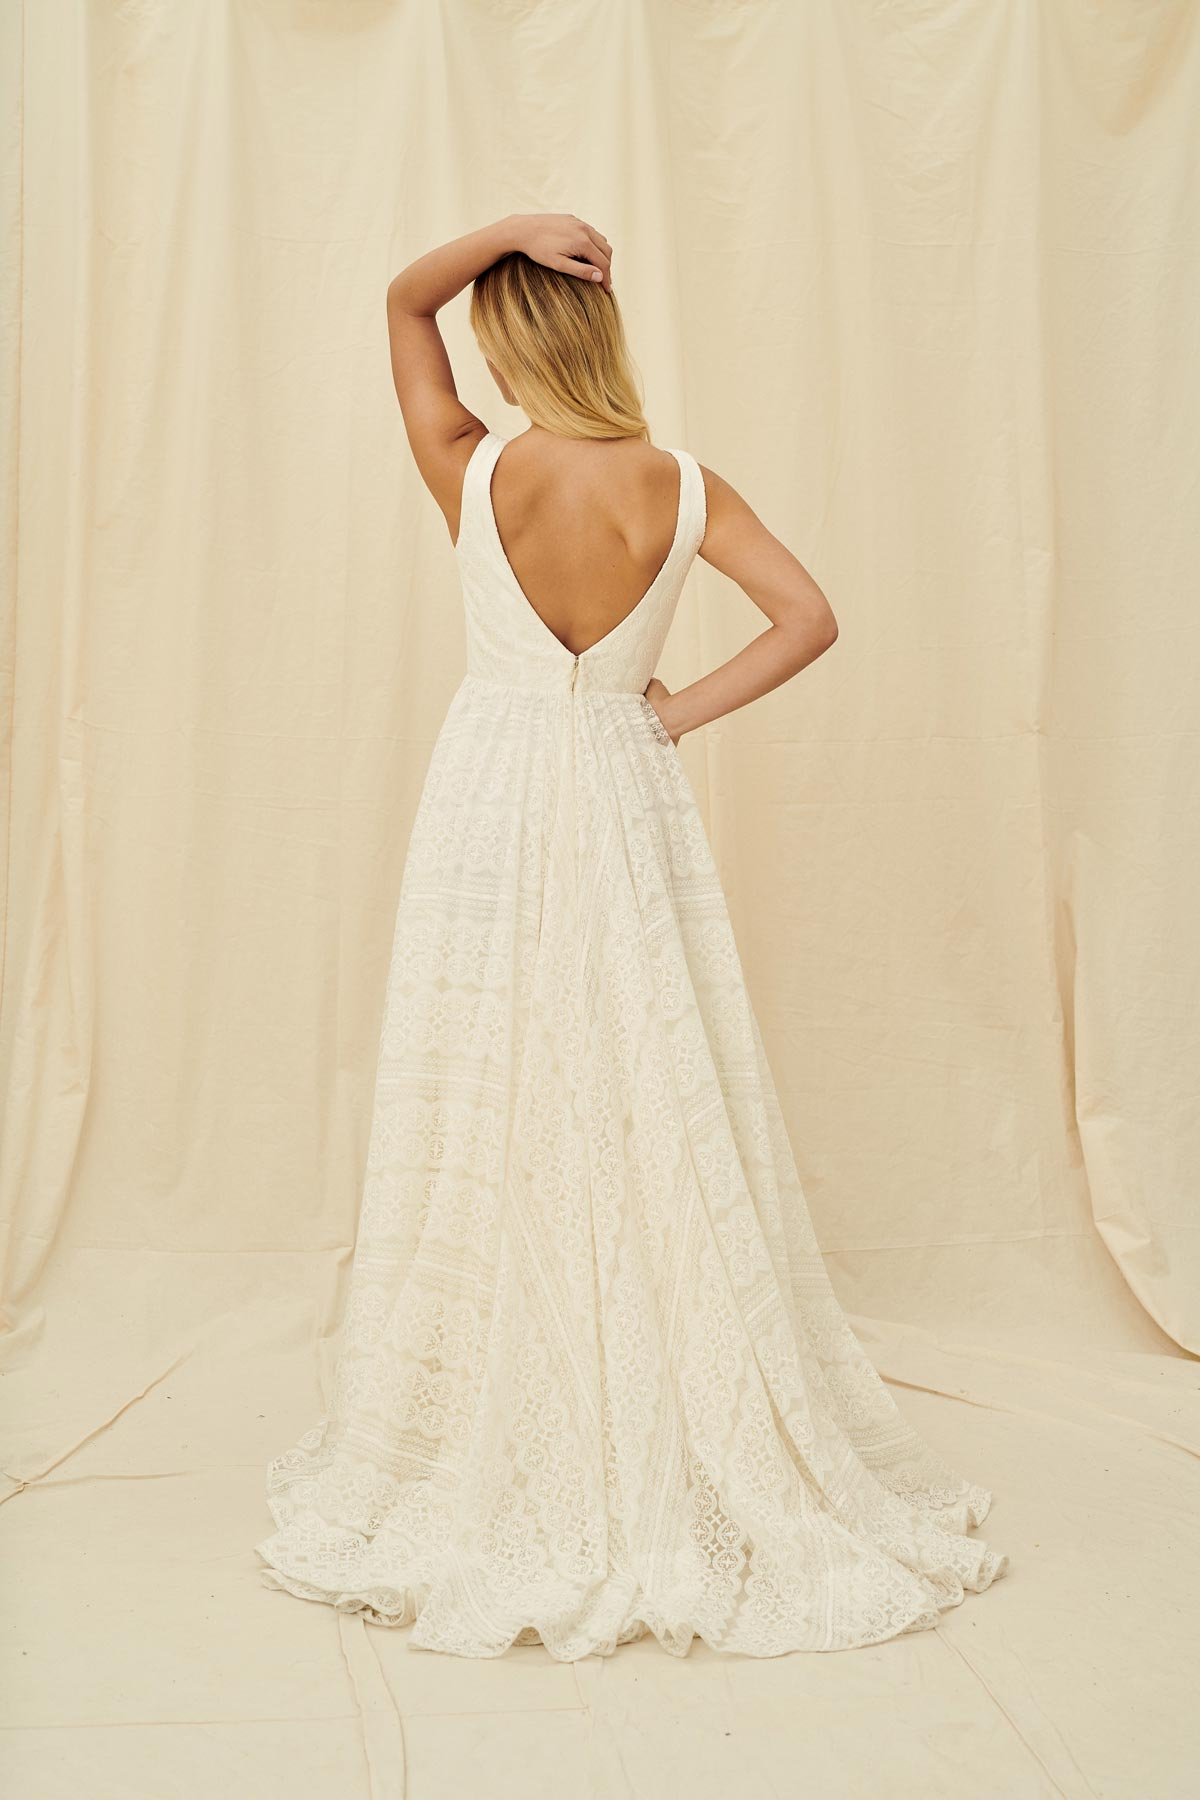 A full lace dress with a scoop neck and a low back